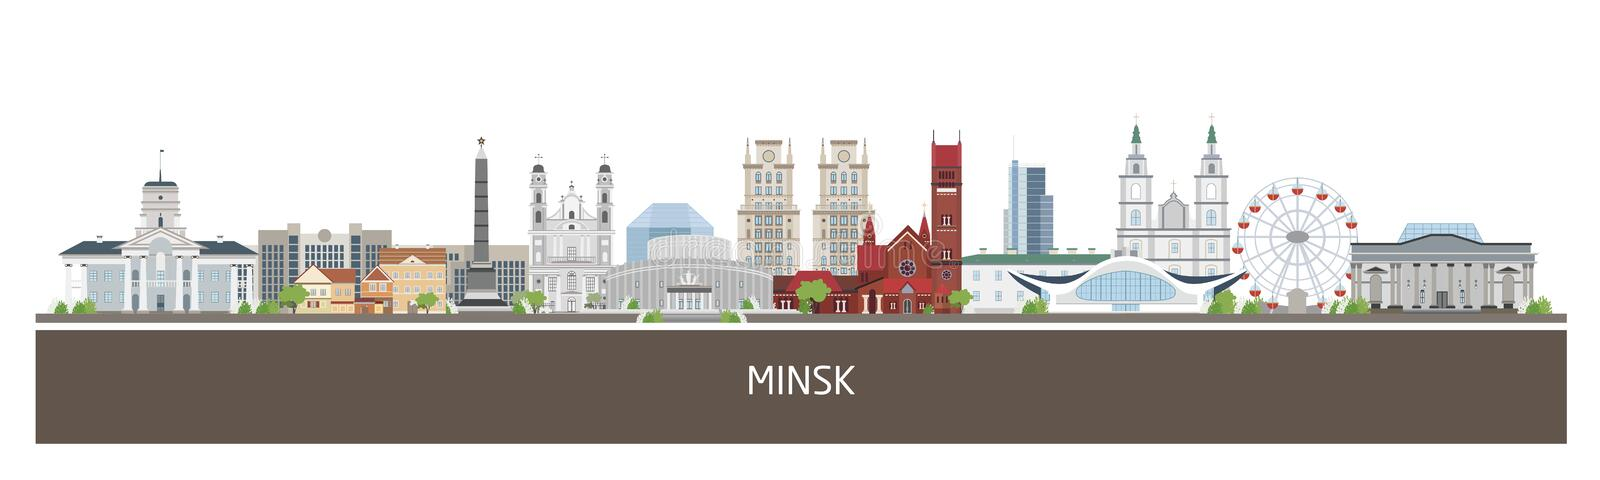 Background with Minsk city buildings and place for text. horizontal orientation banner, flyer, header for site. vector illustration